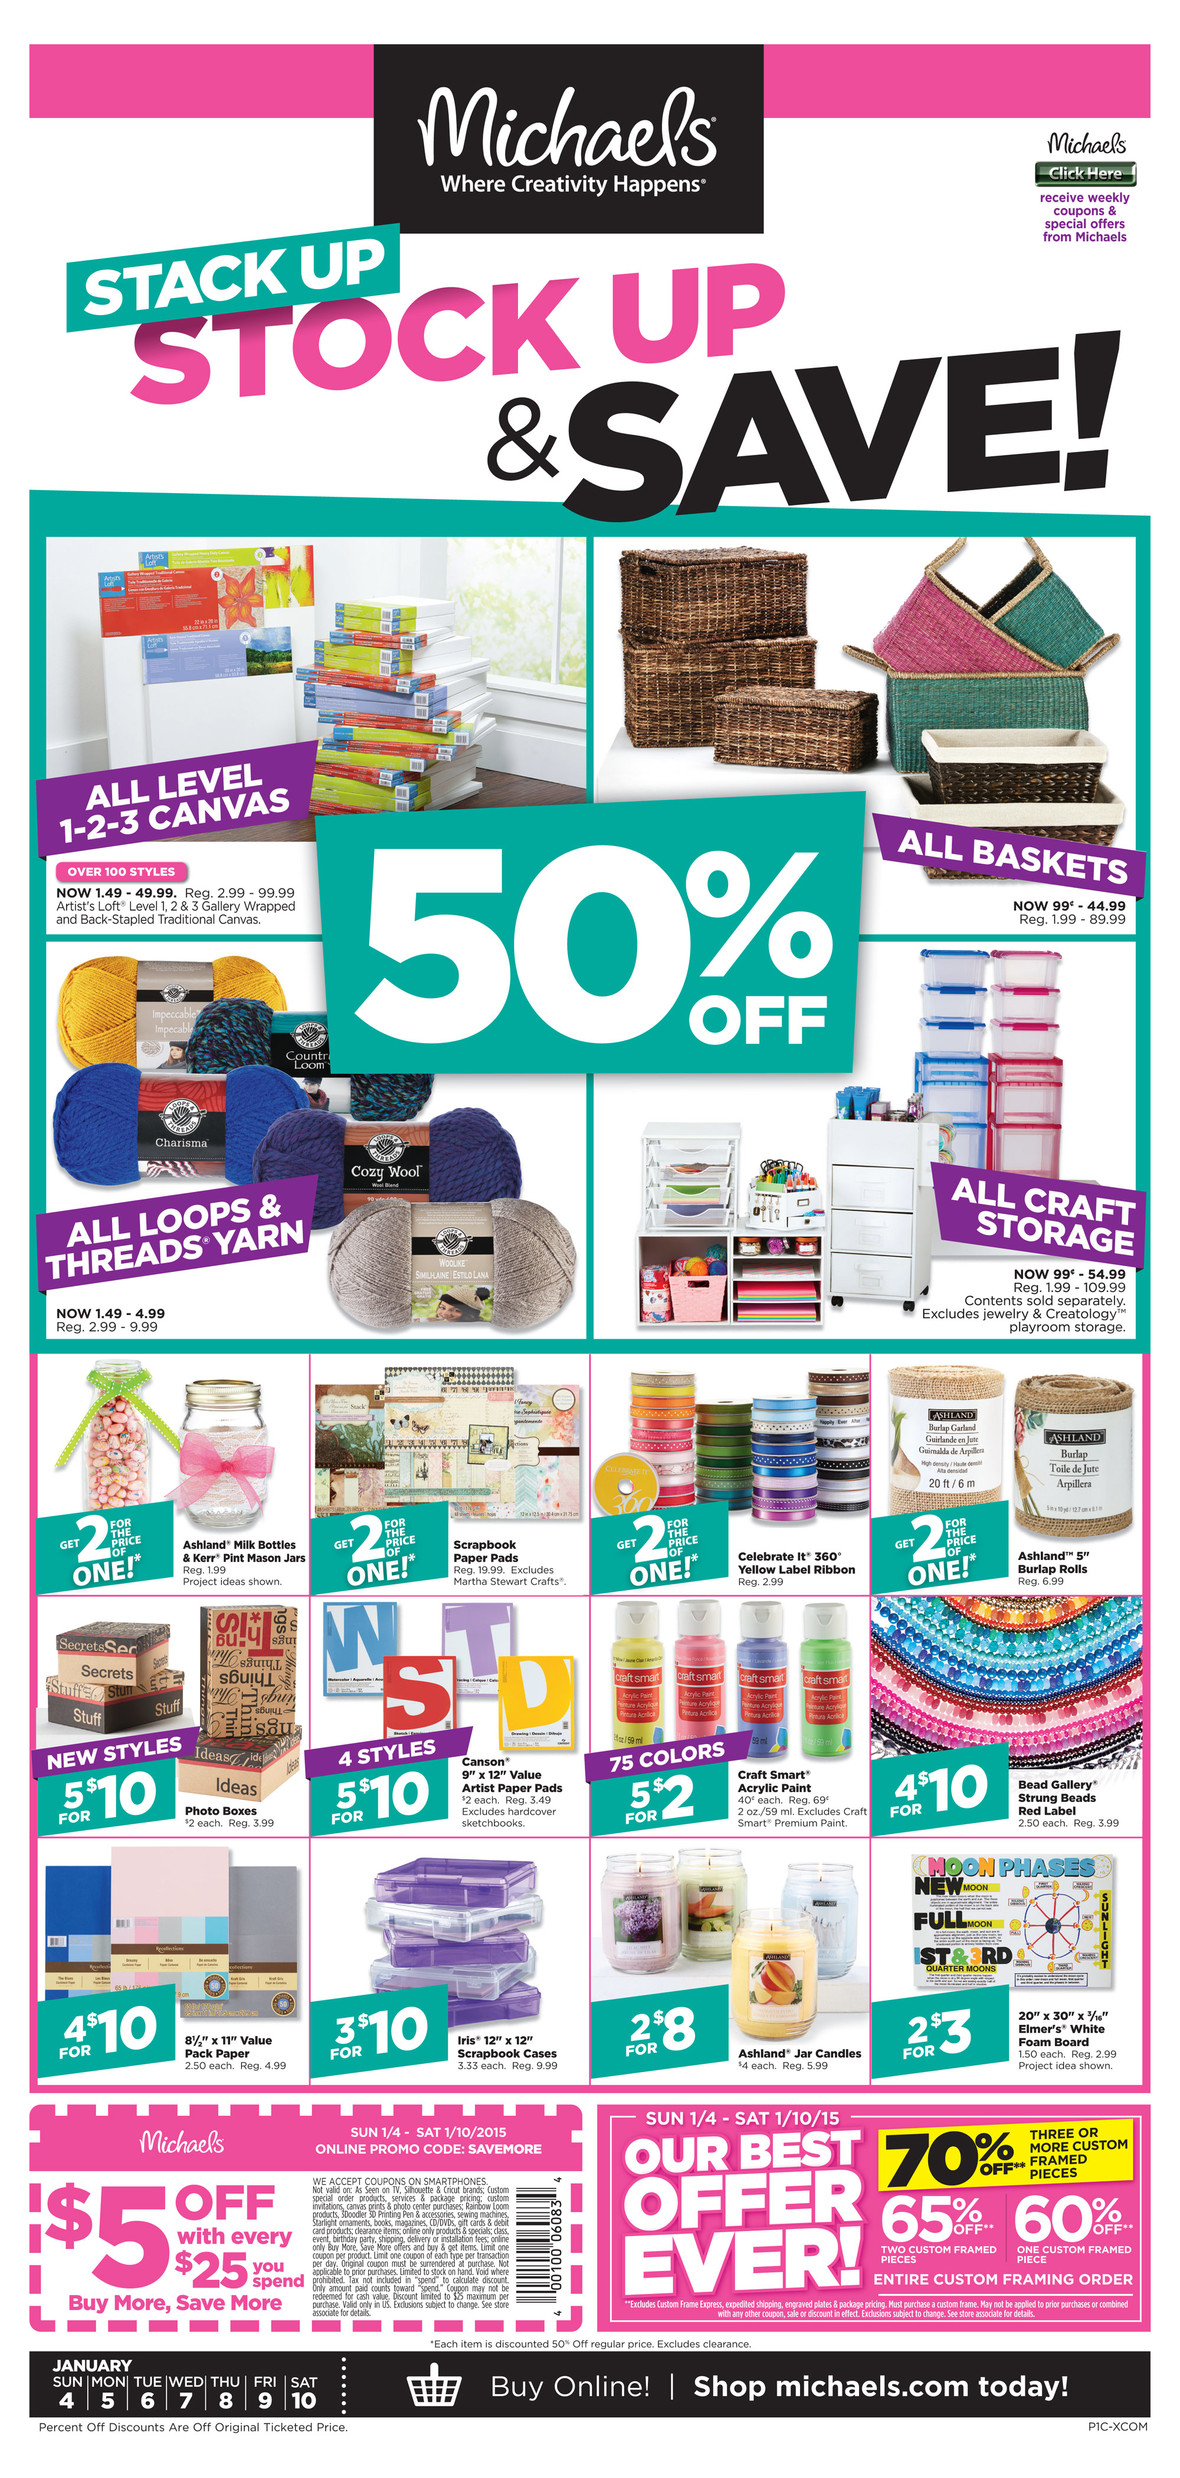 Michaels Coupon October 2016 $5 off every $25 at Michaels, or online via promo code SAVEMORE